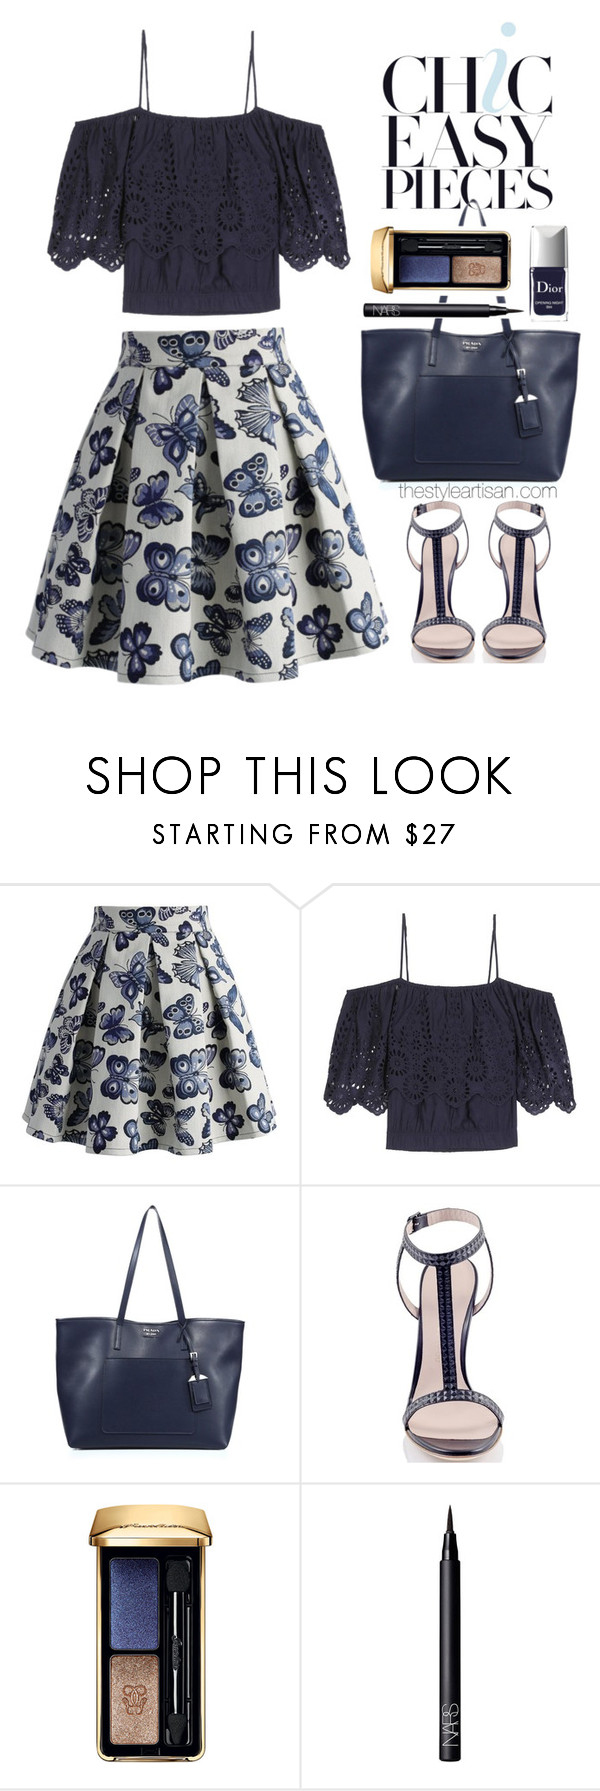 """Chicwish Fond for Butterflies Pleated Skirt"" by thestyleartisan ❤ liked on Polyvore featuring Chicwish, Ganni, Prada, Konstantina Tzovolou, Guerlain, NARS Cosmetics and Christian Dior"